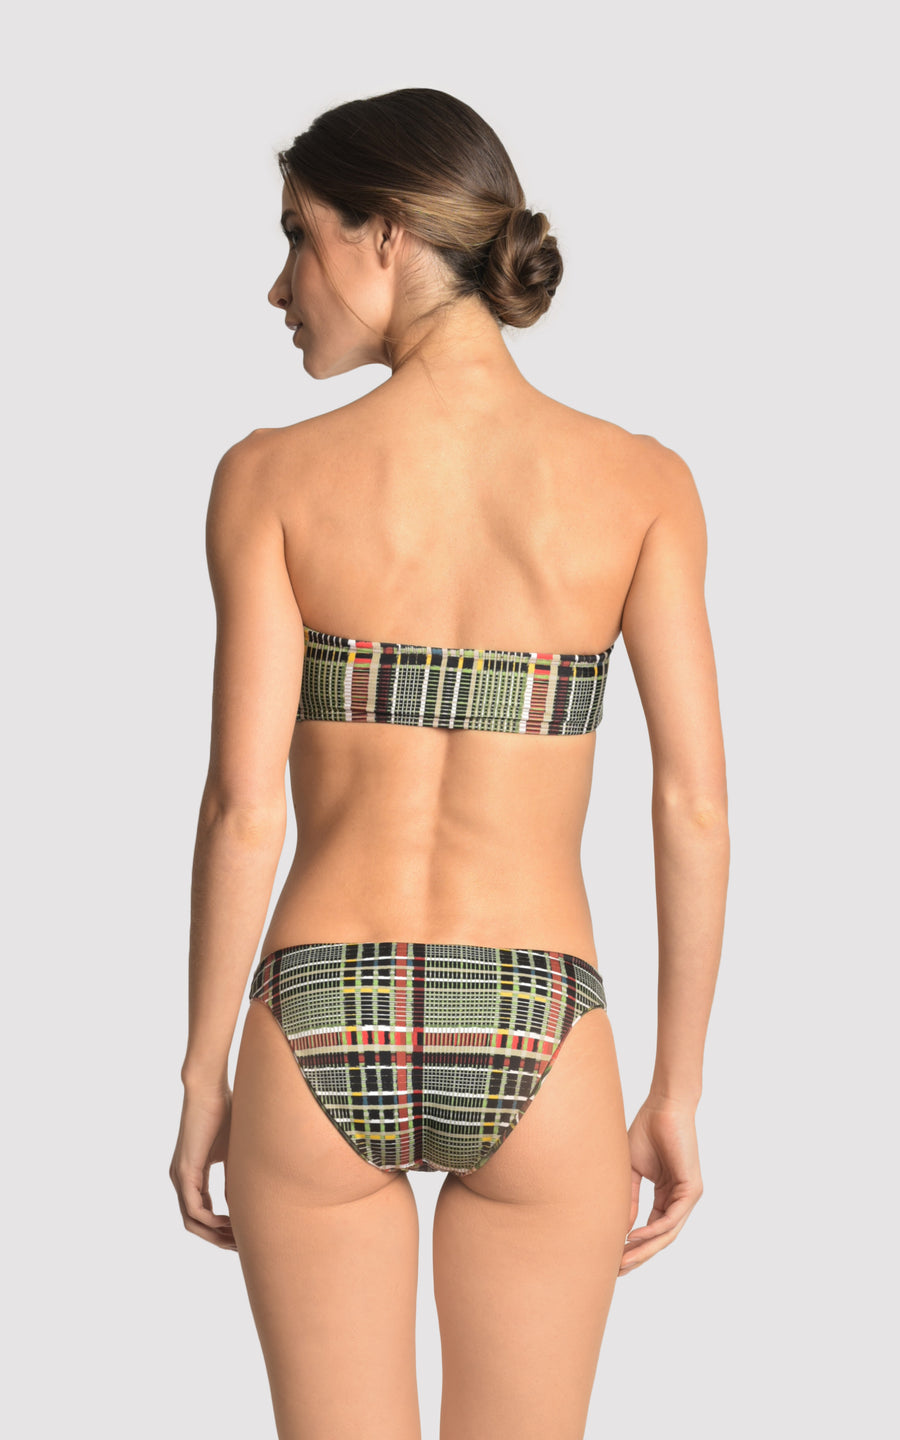 Plaid Basic Bandeau Top and Athletic Bottom